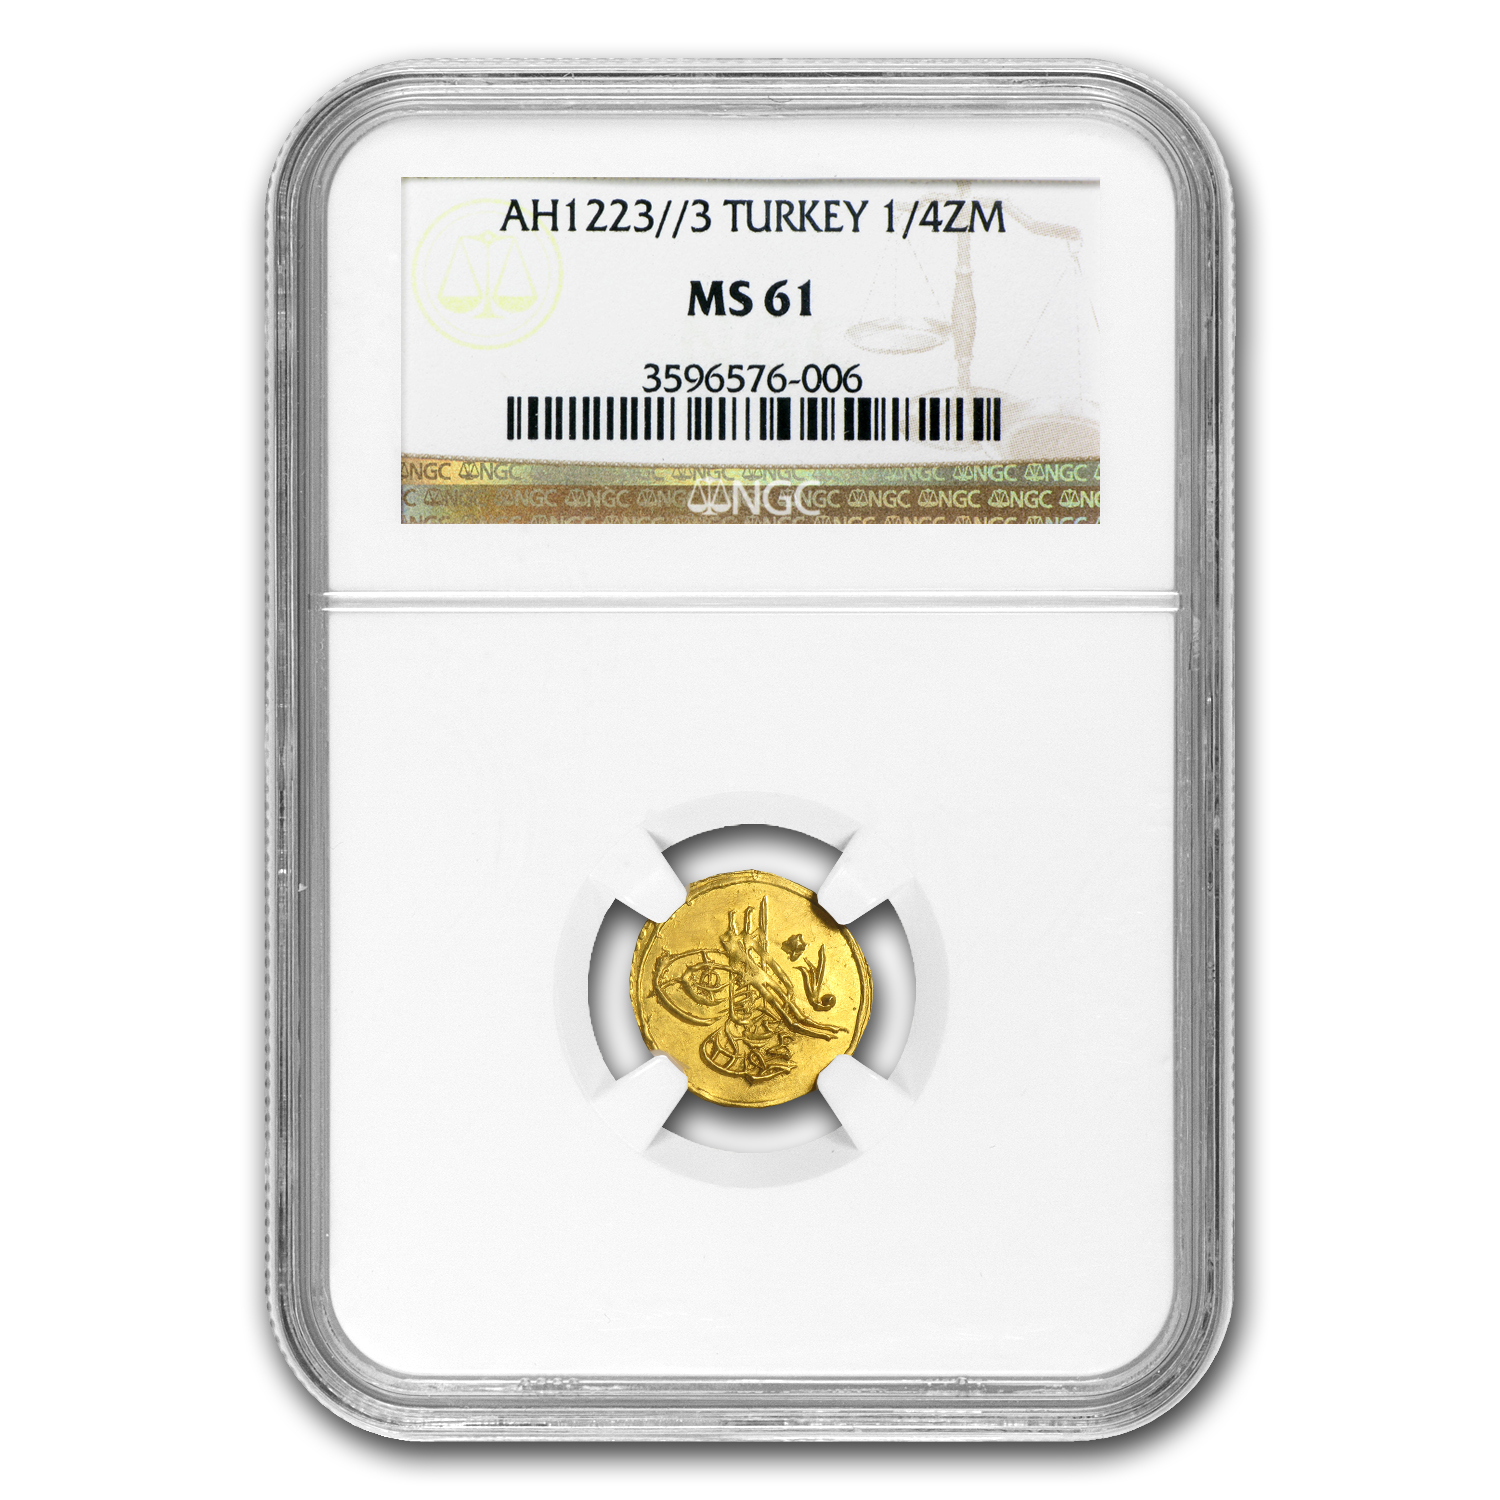 AH1223/1810 Turkey Gold 1/4 Zeri Mahbub MS-61 NGC